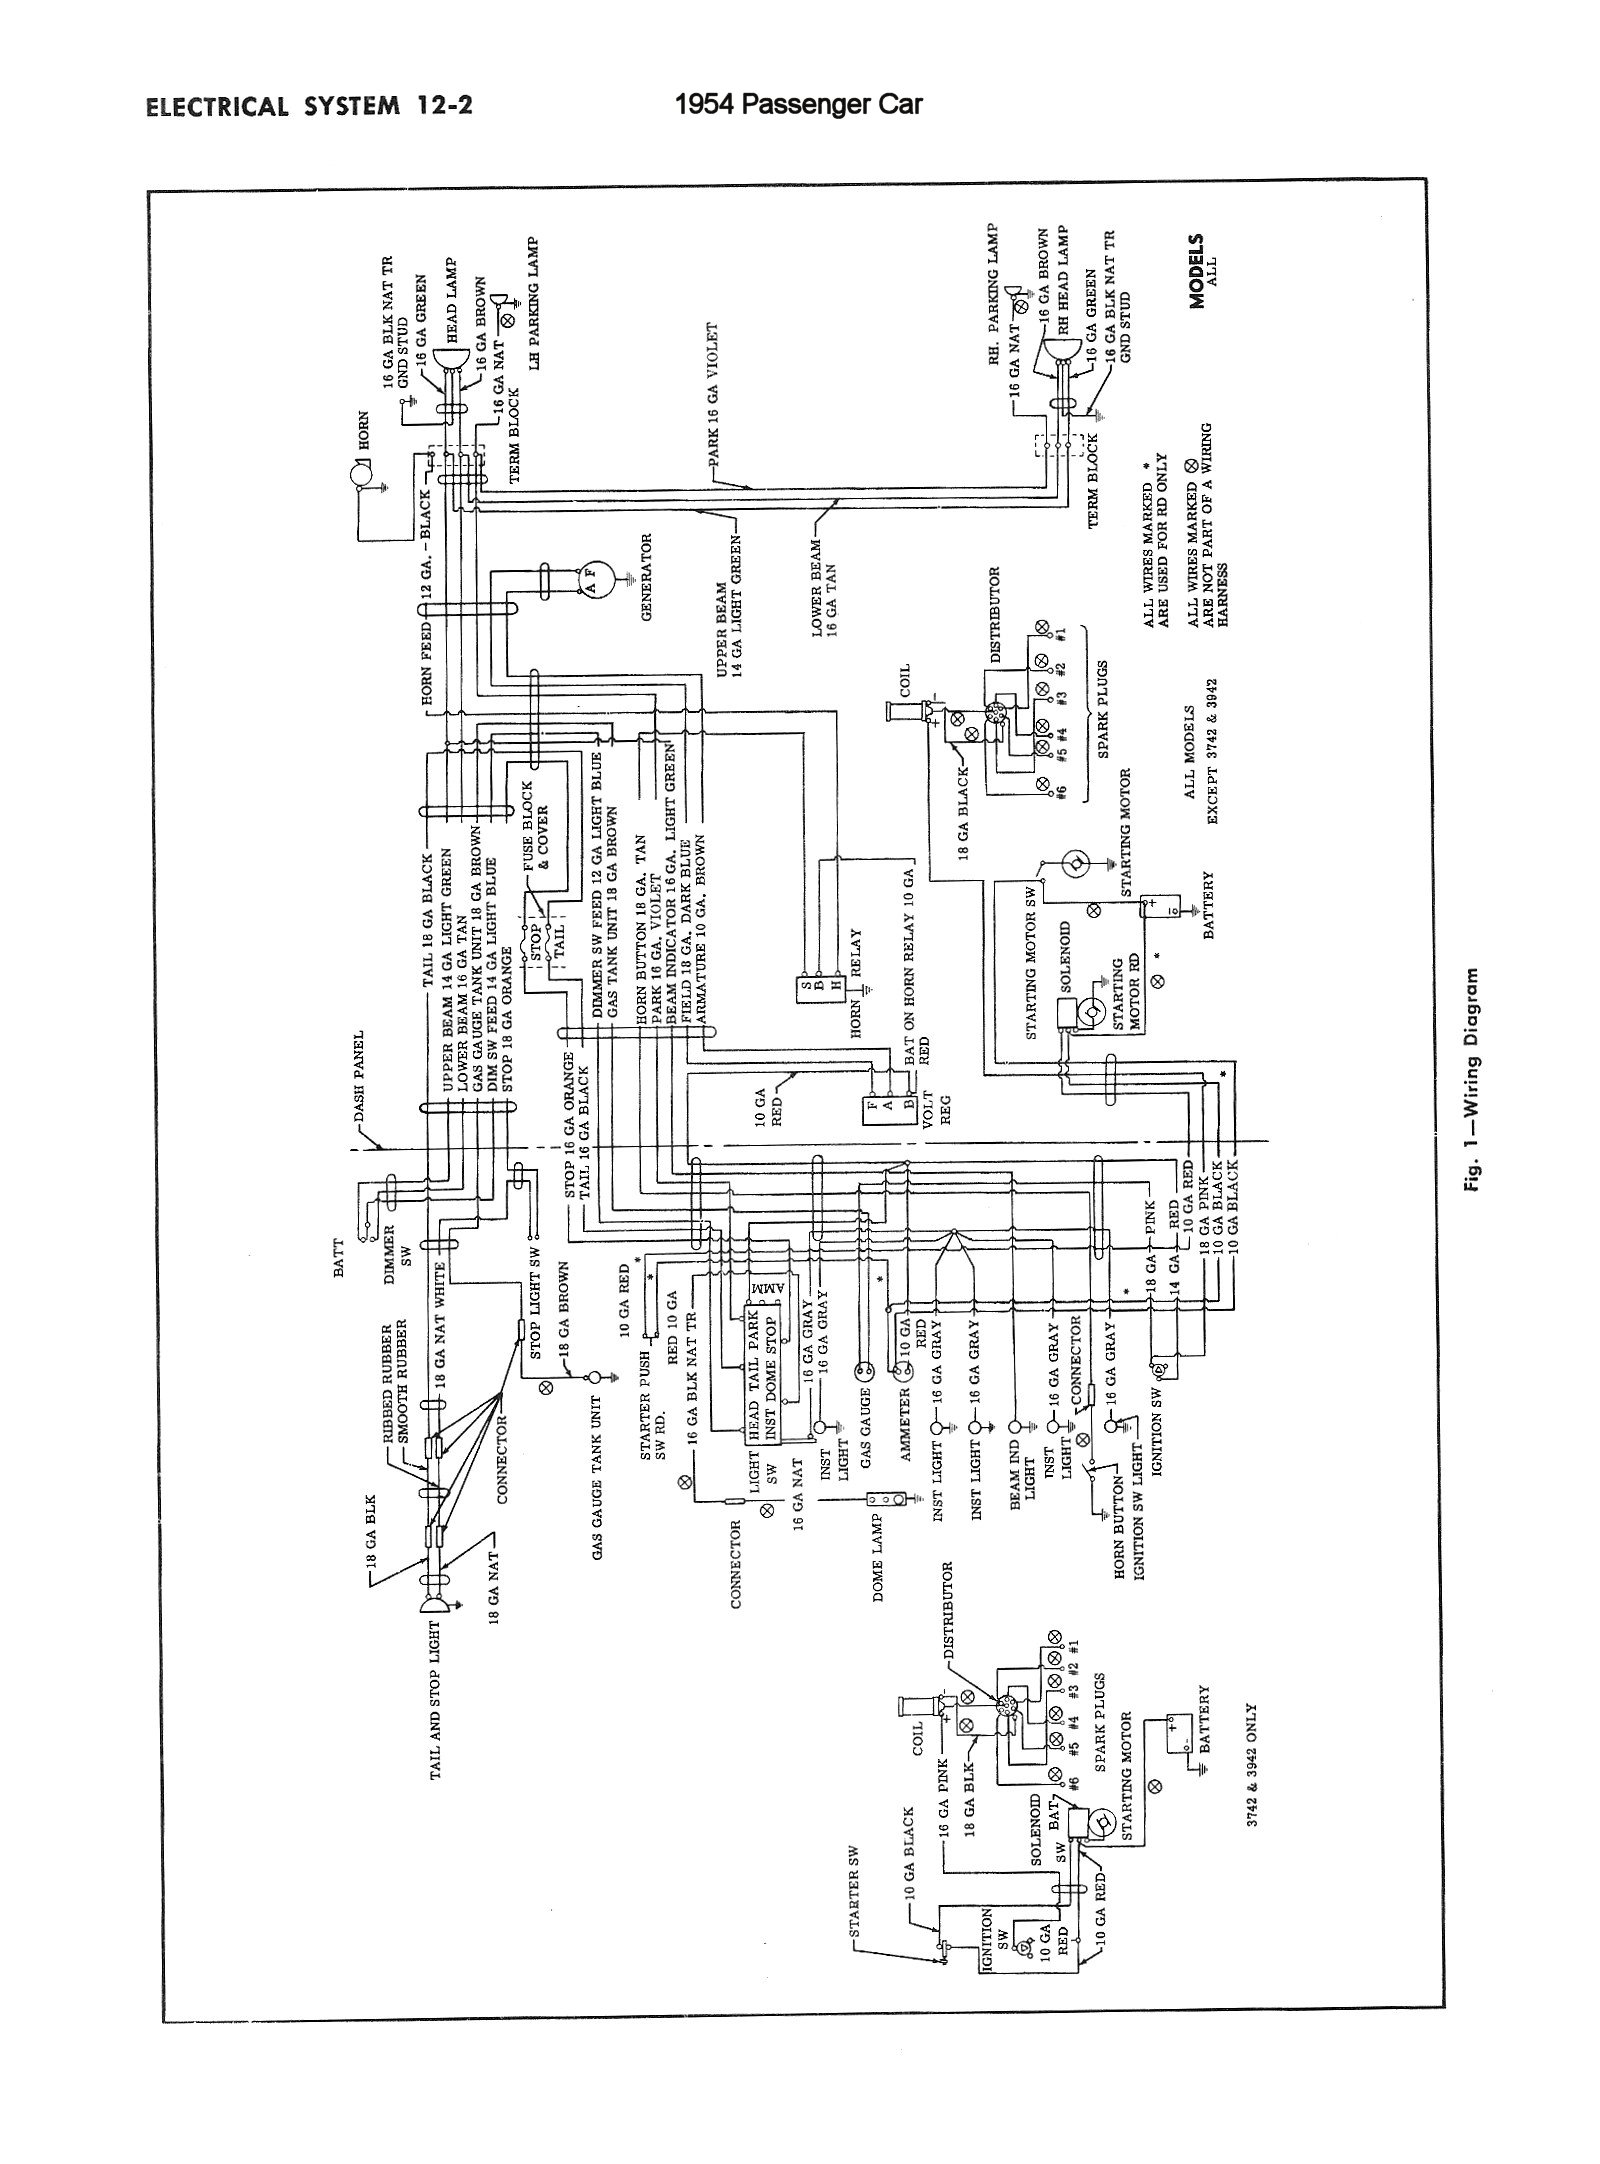 chevy truck wiring diagram likewise 1954 ford truck wiring diagram rh abetter pw